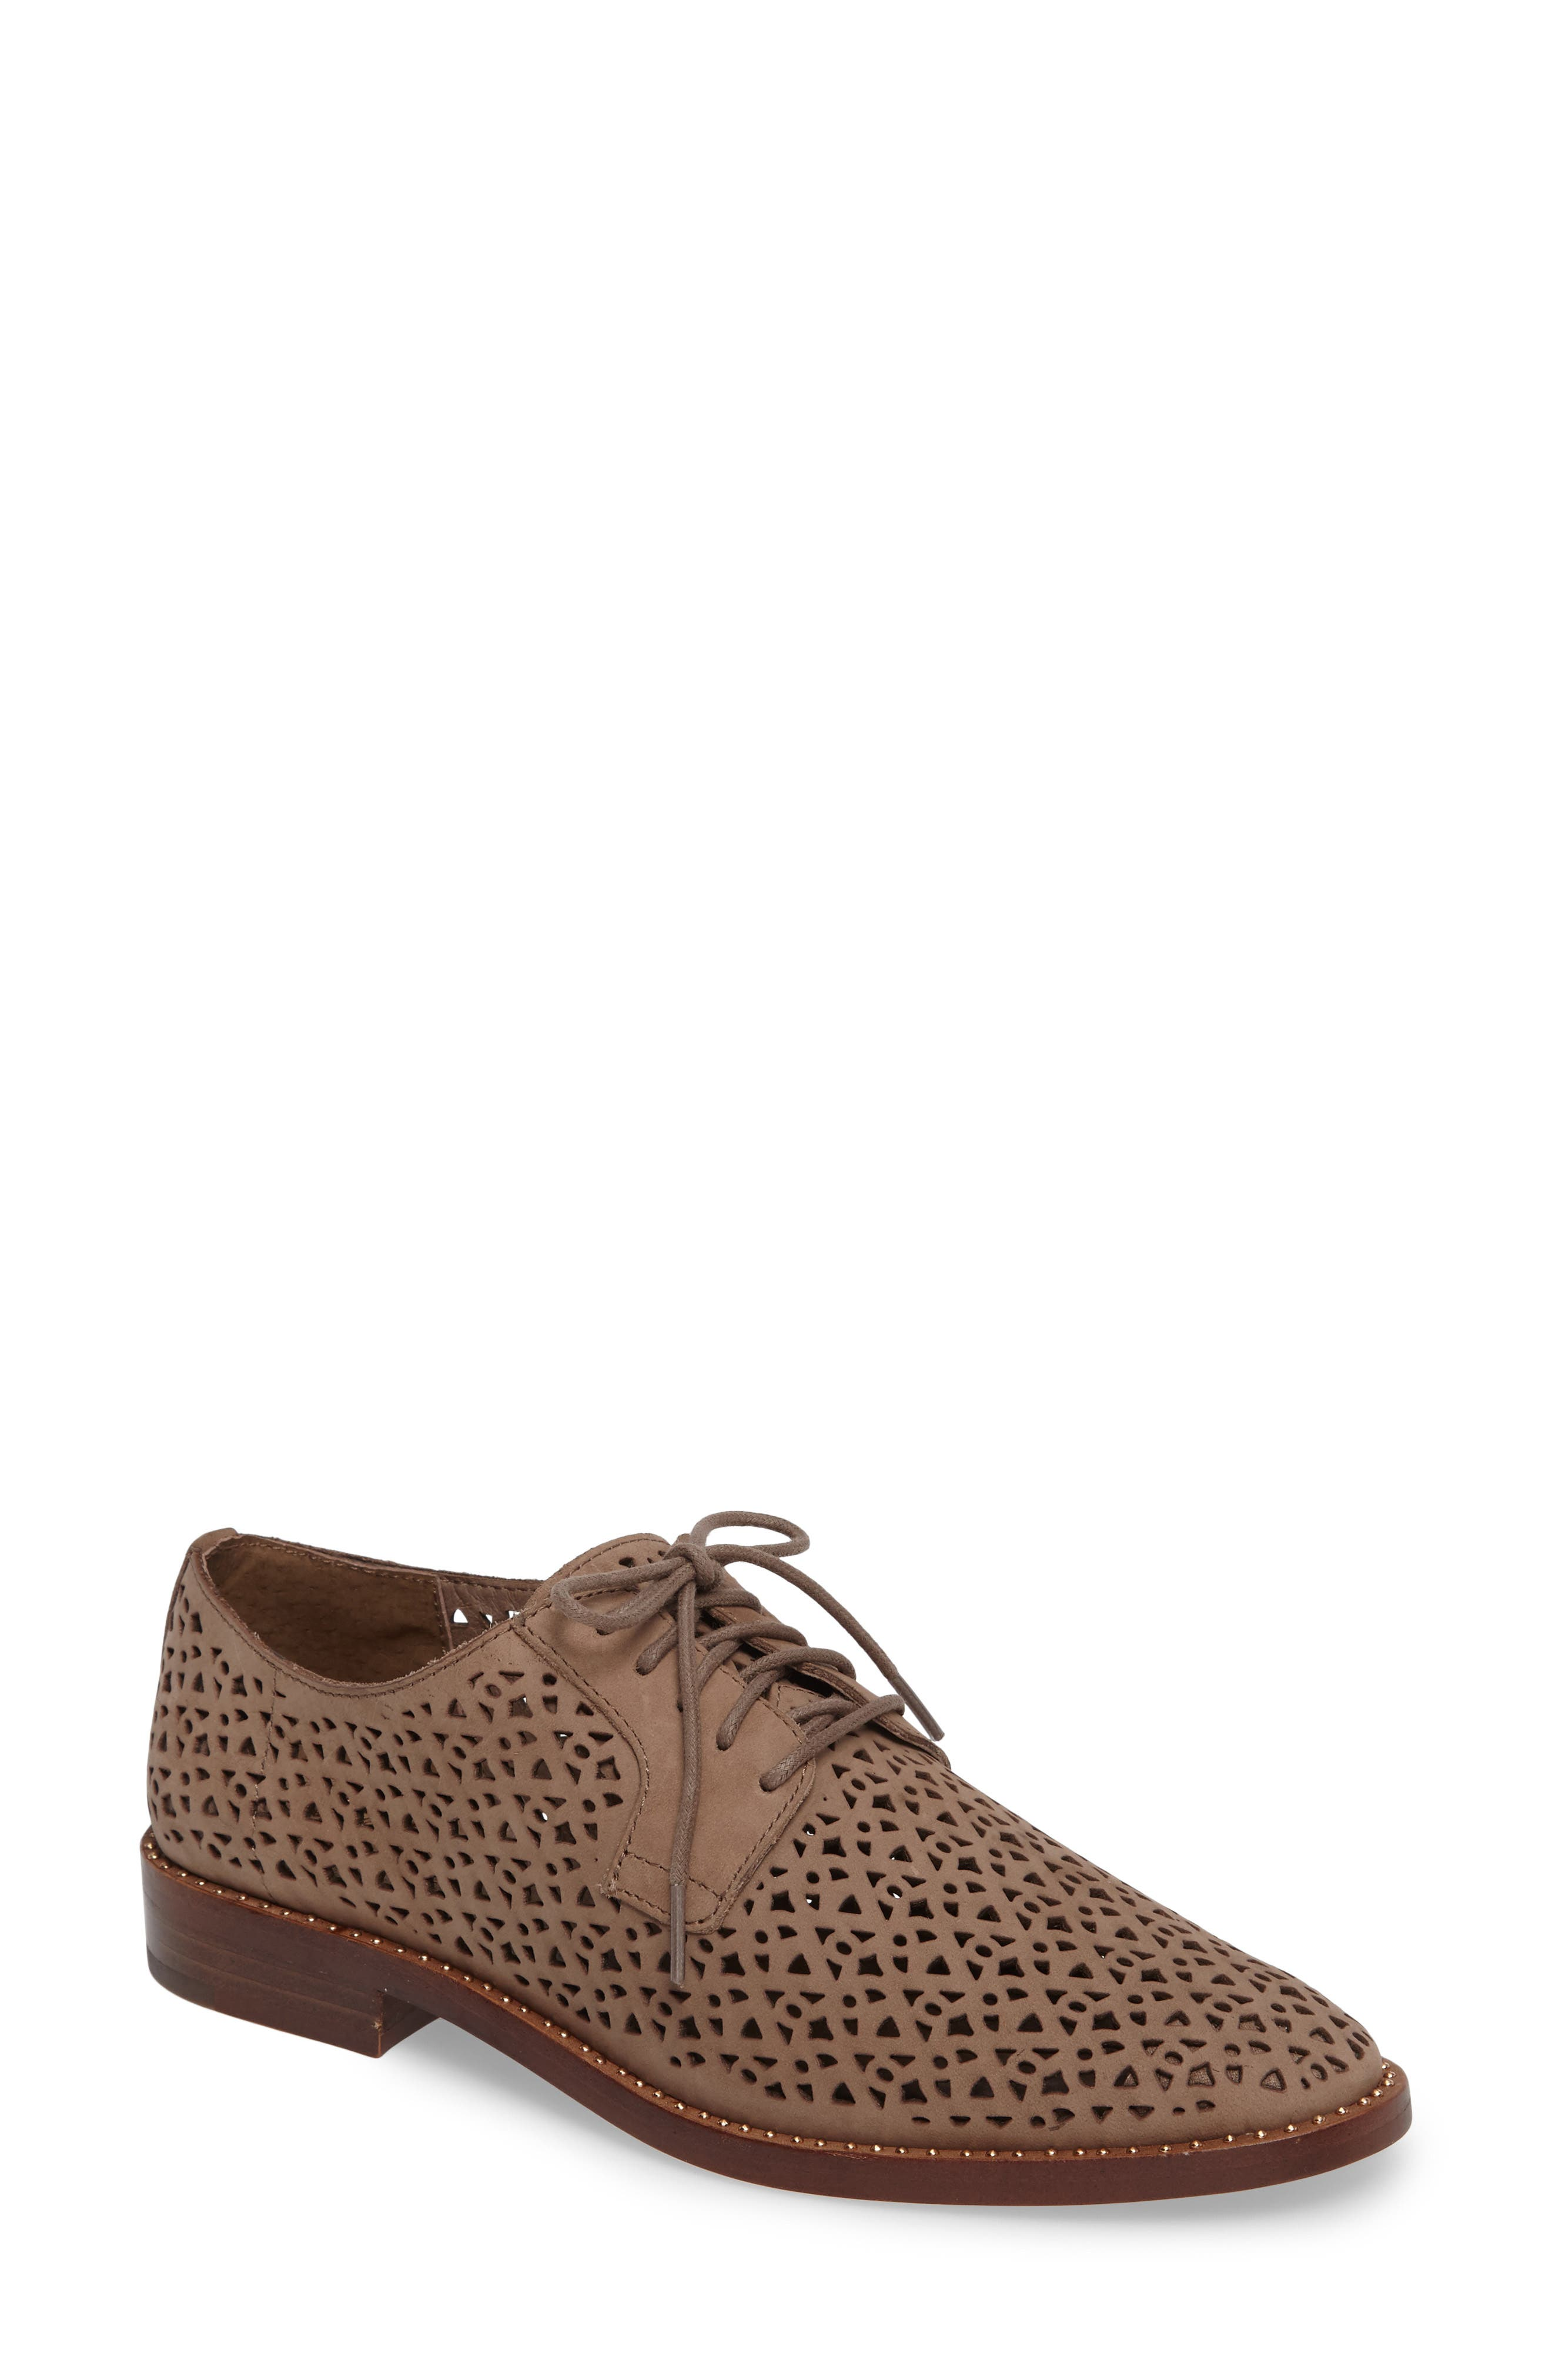 Lesta Geo Perforated Oxford,                             Main thumbnail 1, color,                             French Taupe Suede